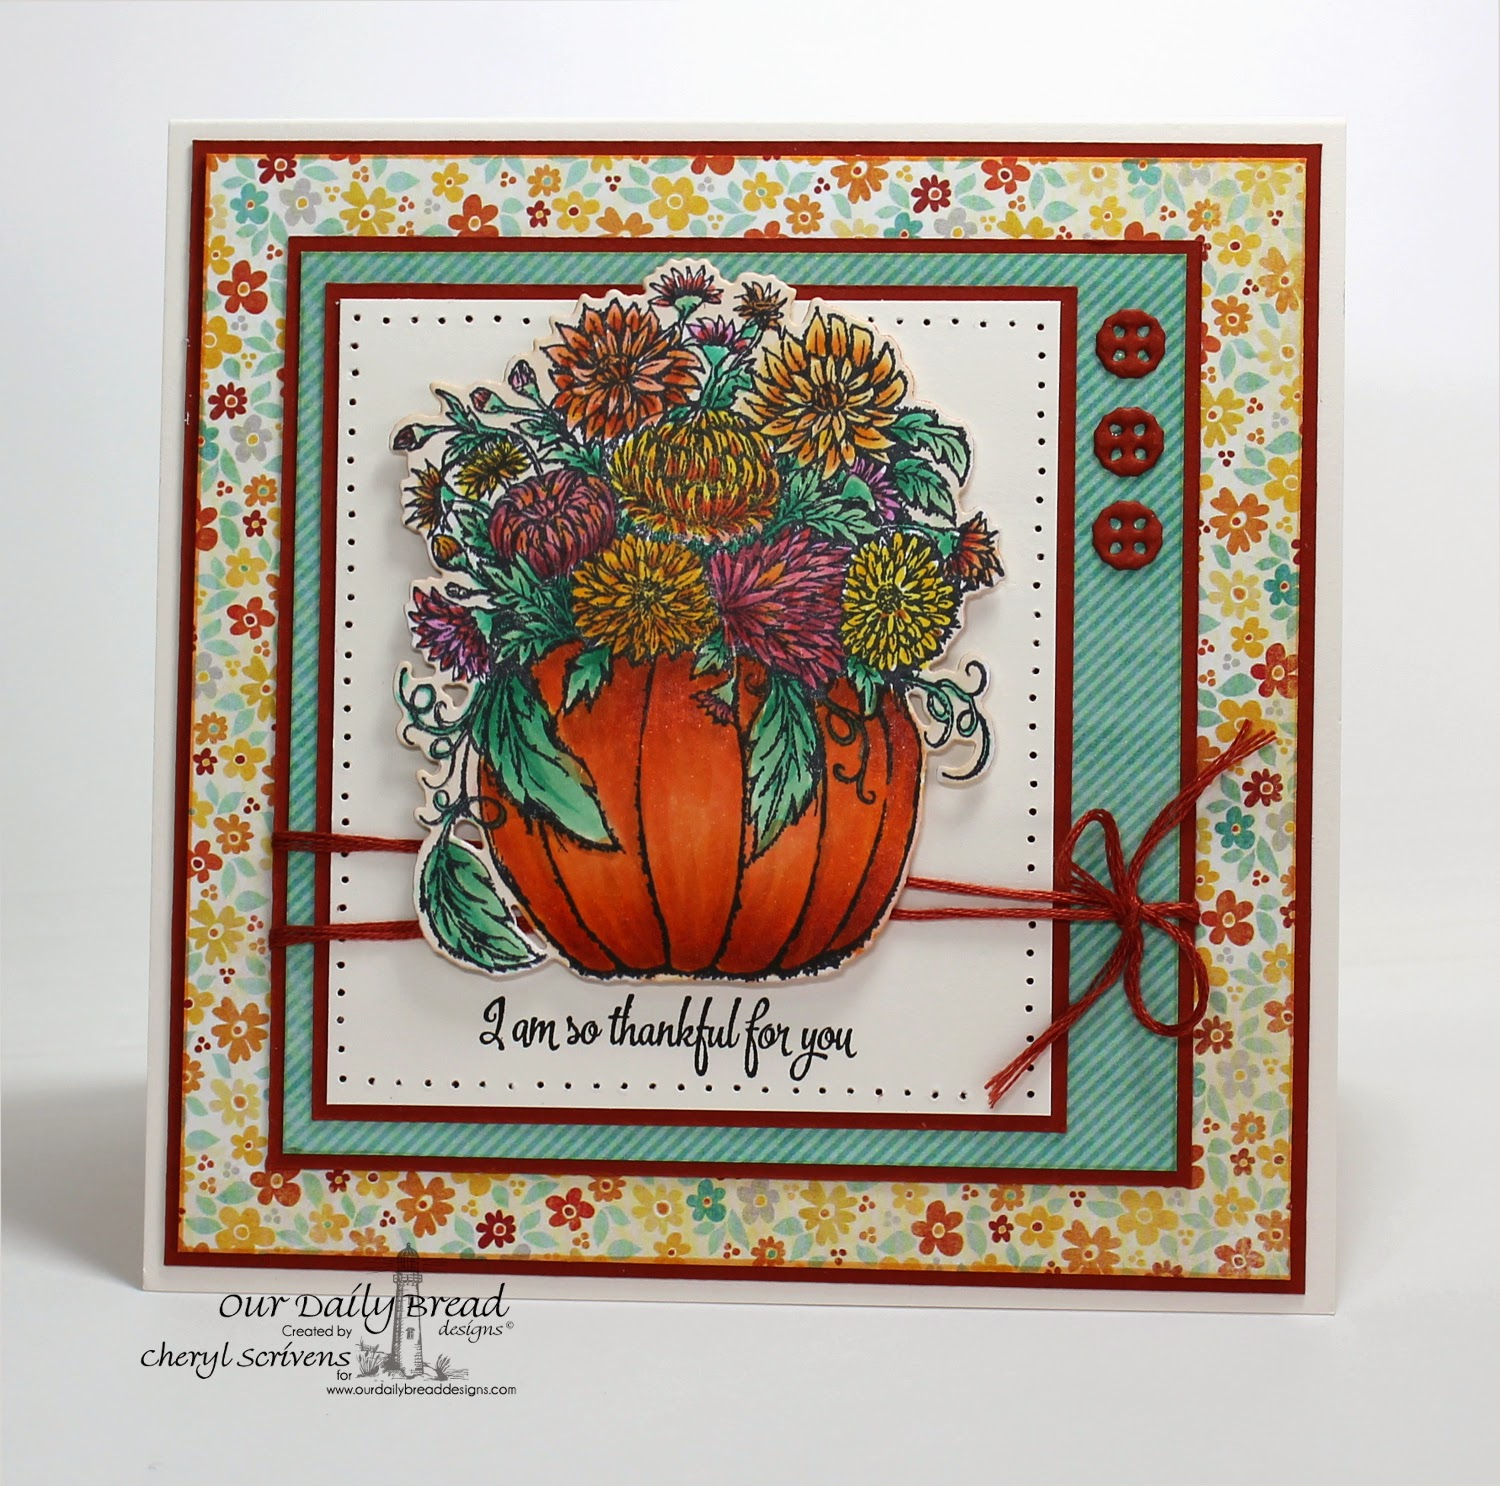 Our Daily Bread Designs, ODBDSLC214, Pumpkin with Flowers, Pumpkin with Flowers die, Doily Blessings, Doily dies, CherylQuilts, Designed by Cheryl Scrivens